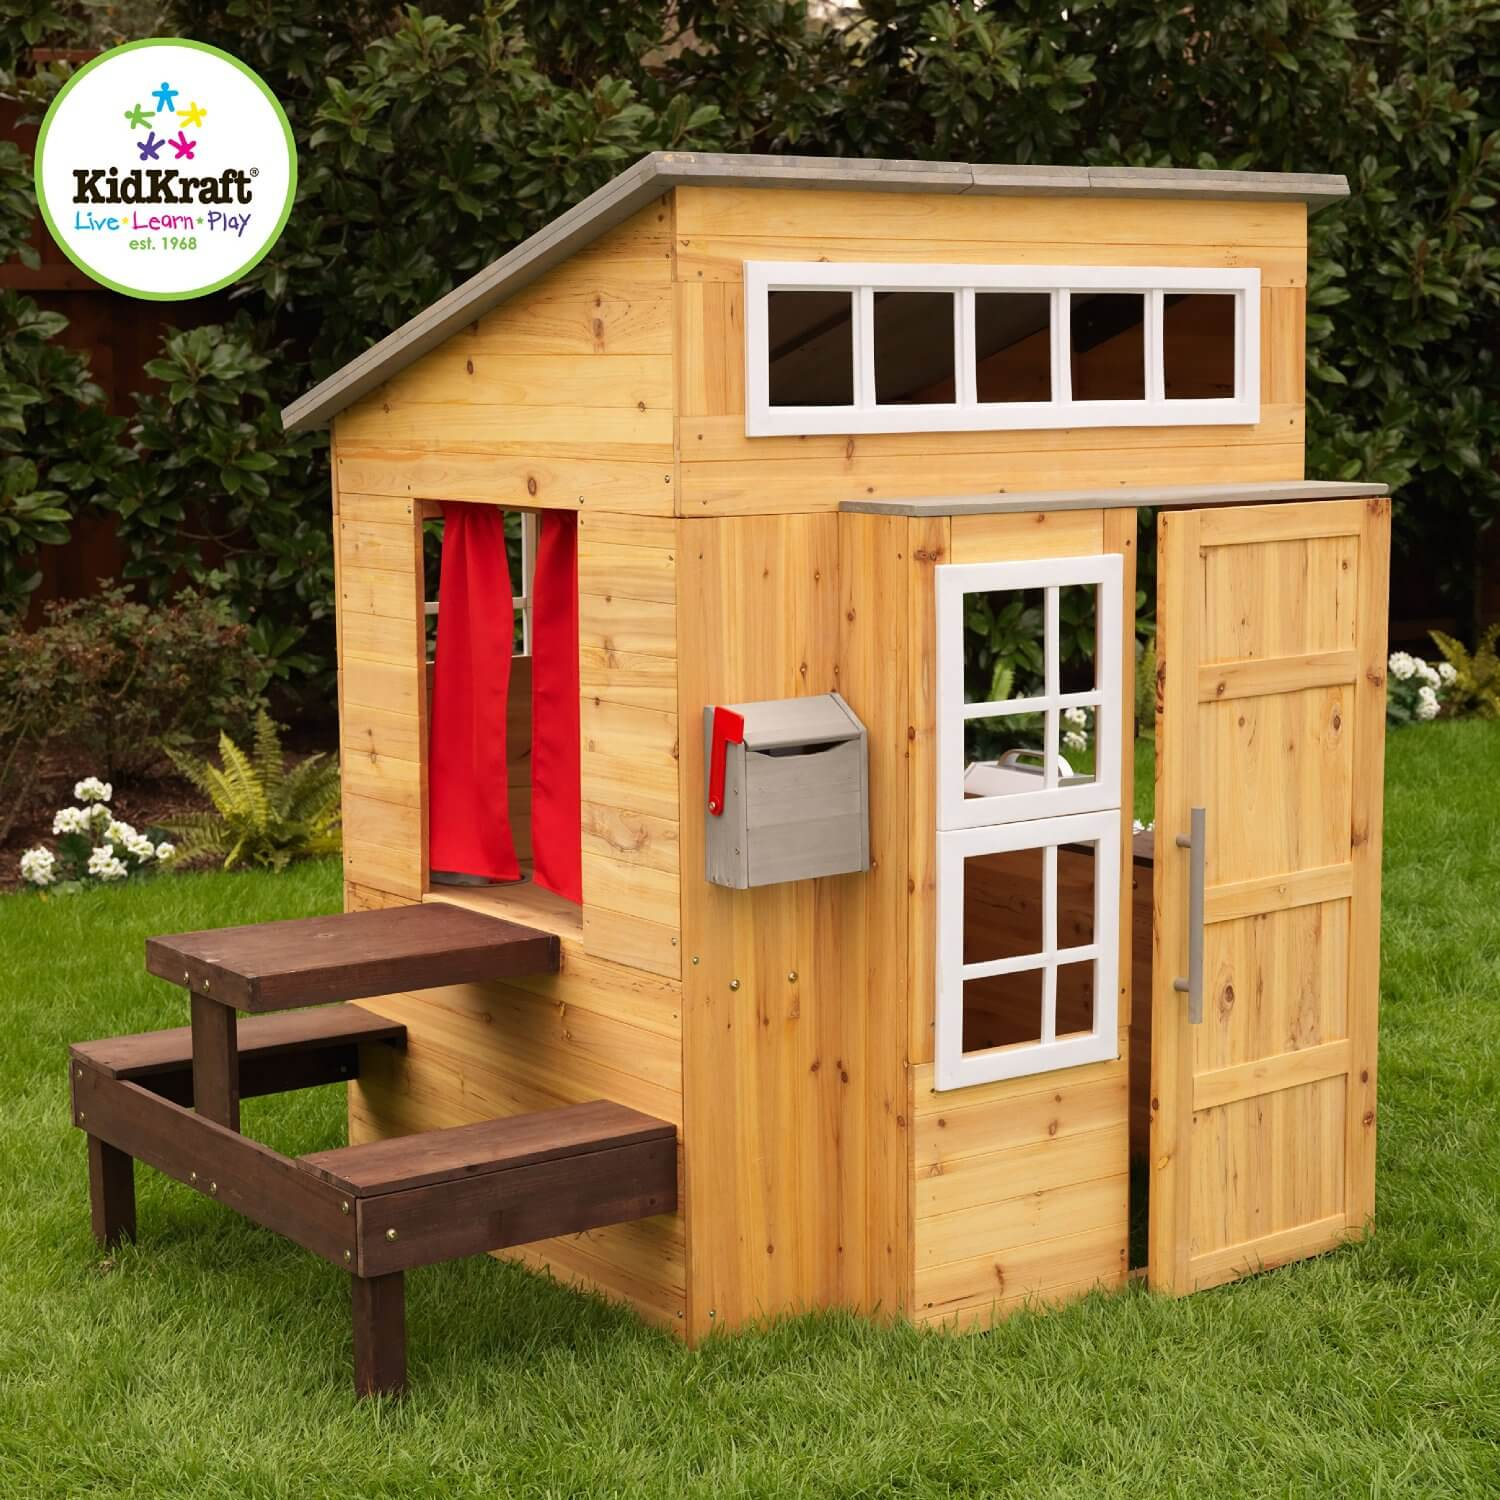 Elegant Wooden Playhouse For Kids